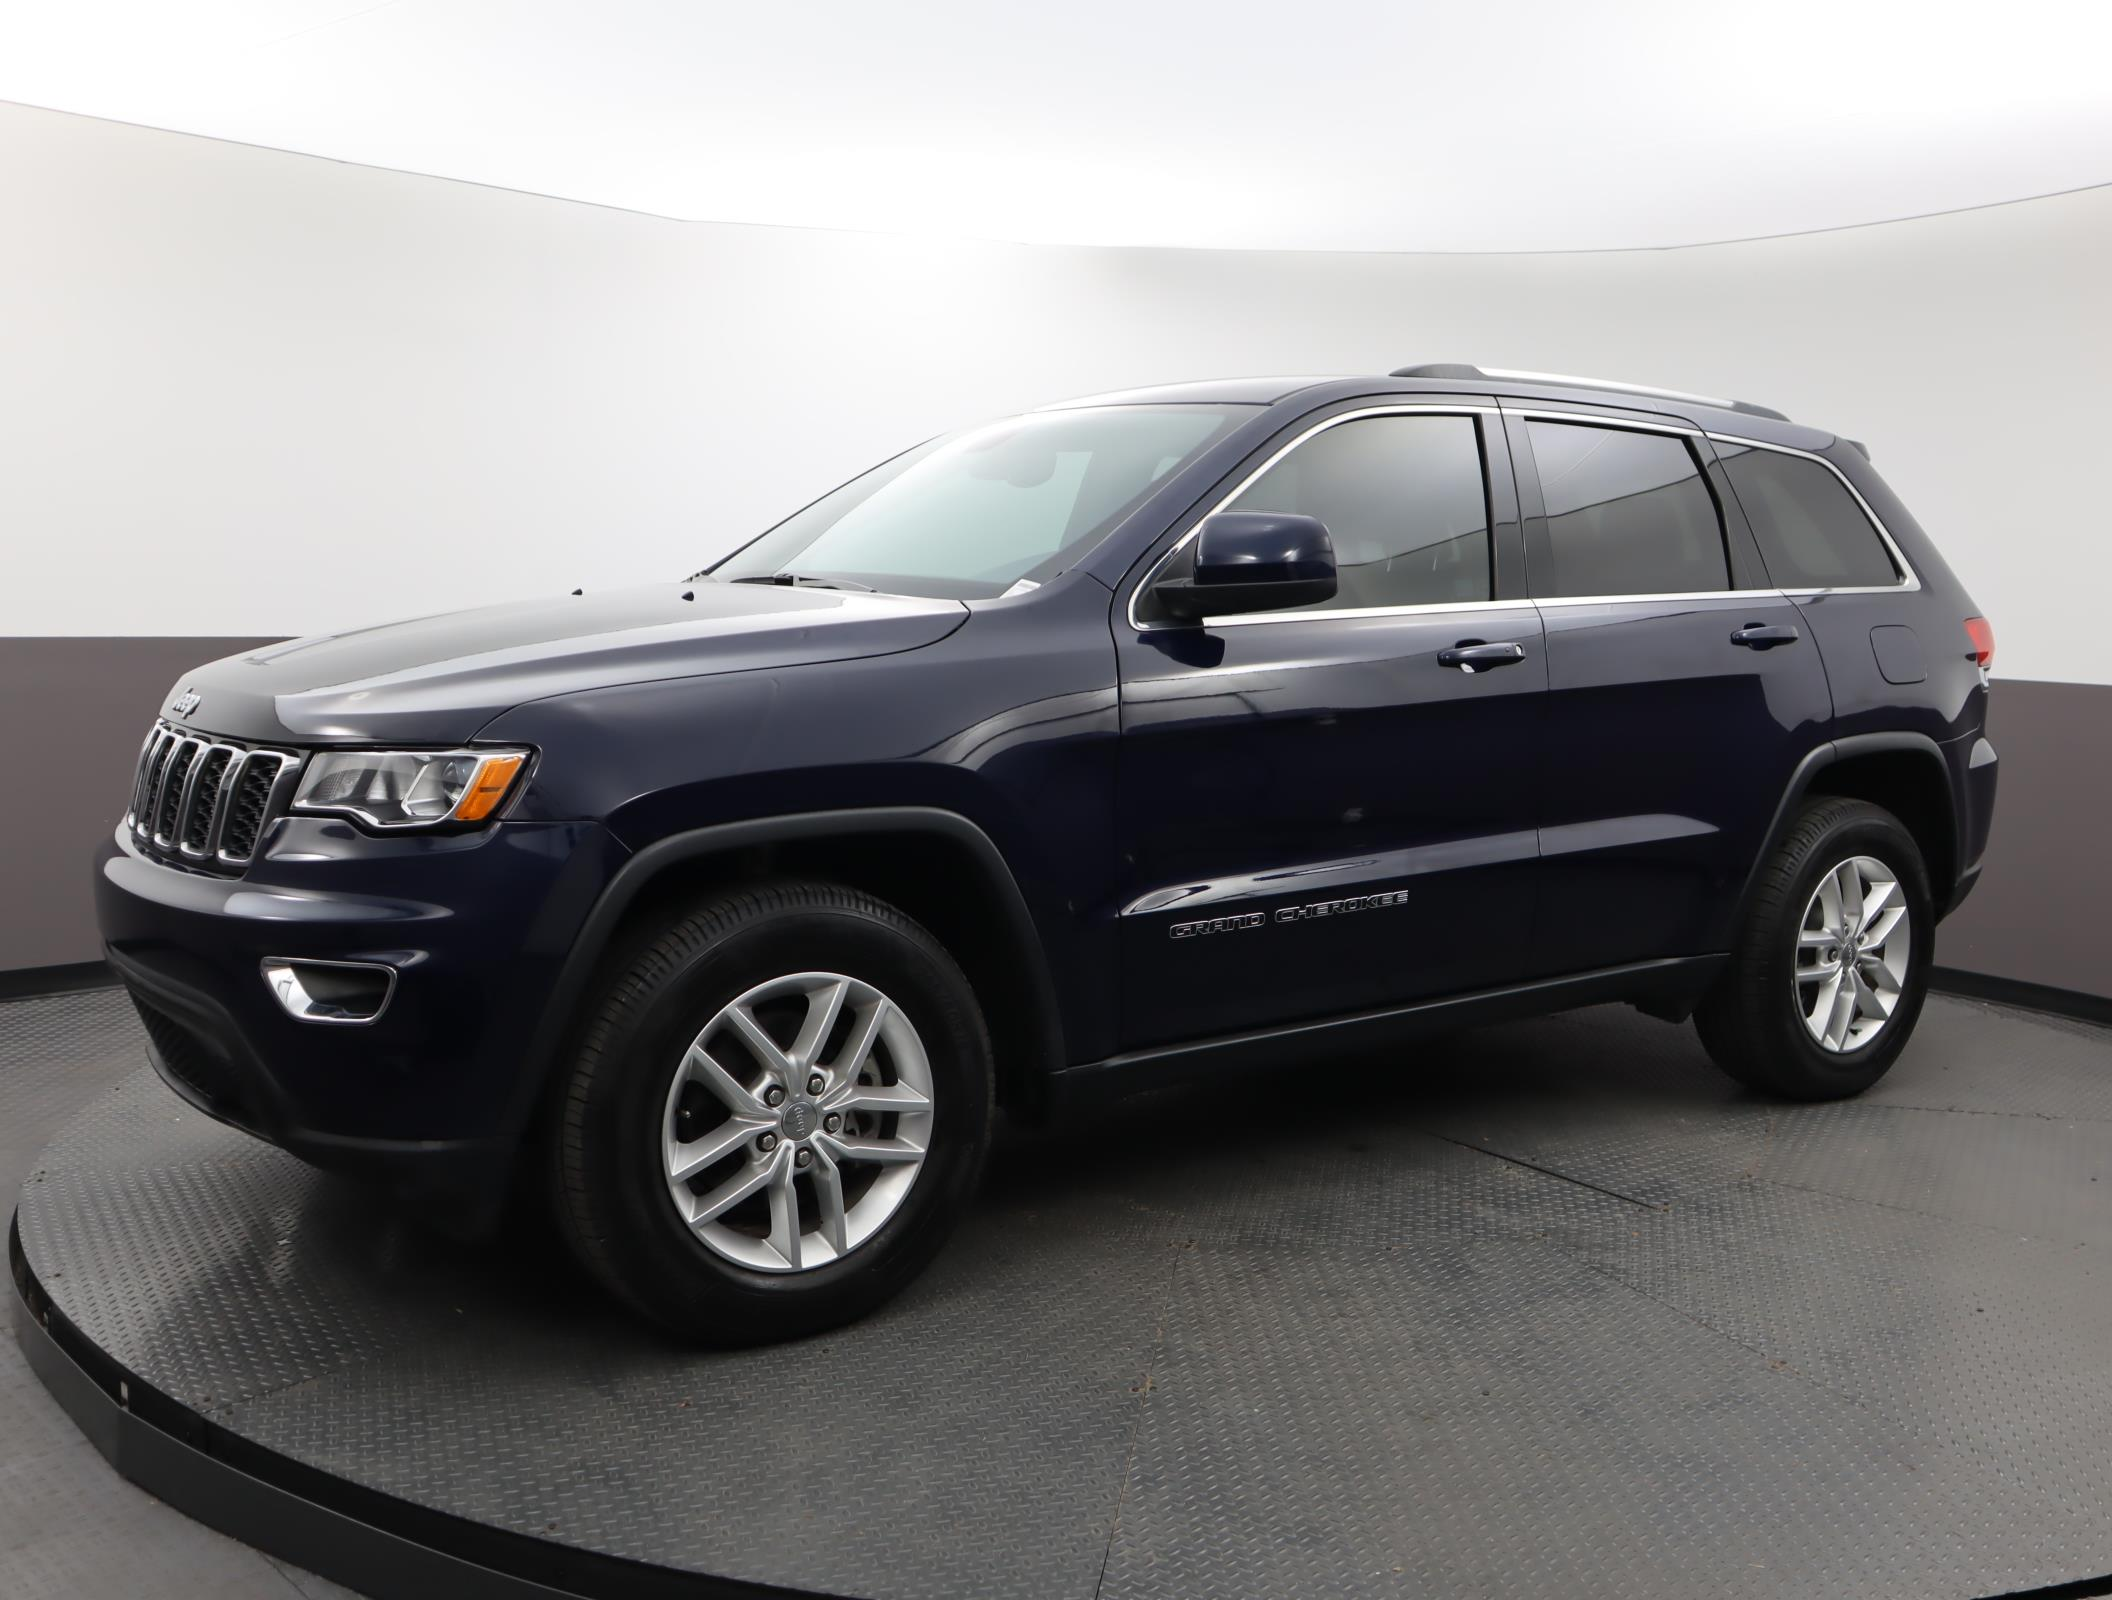 Used JEEP GRAND-CHEROKEE 2017 MIAMI LAREDO